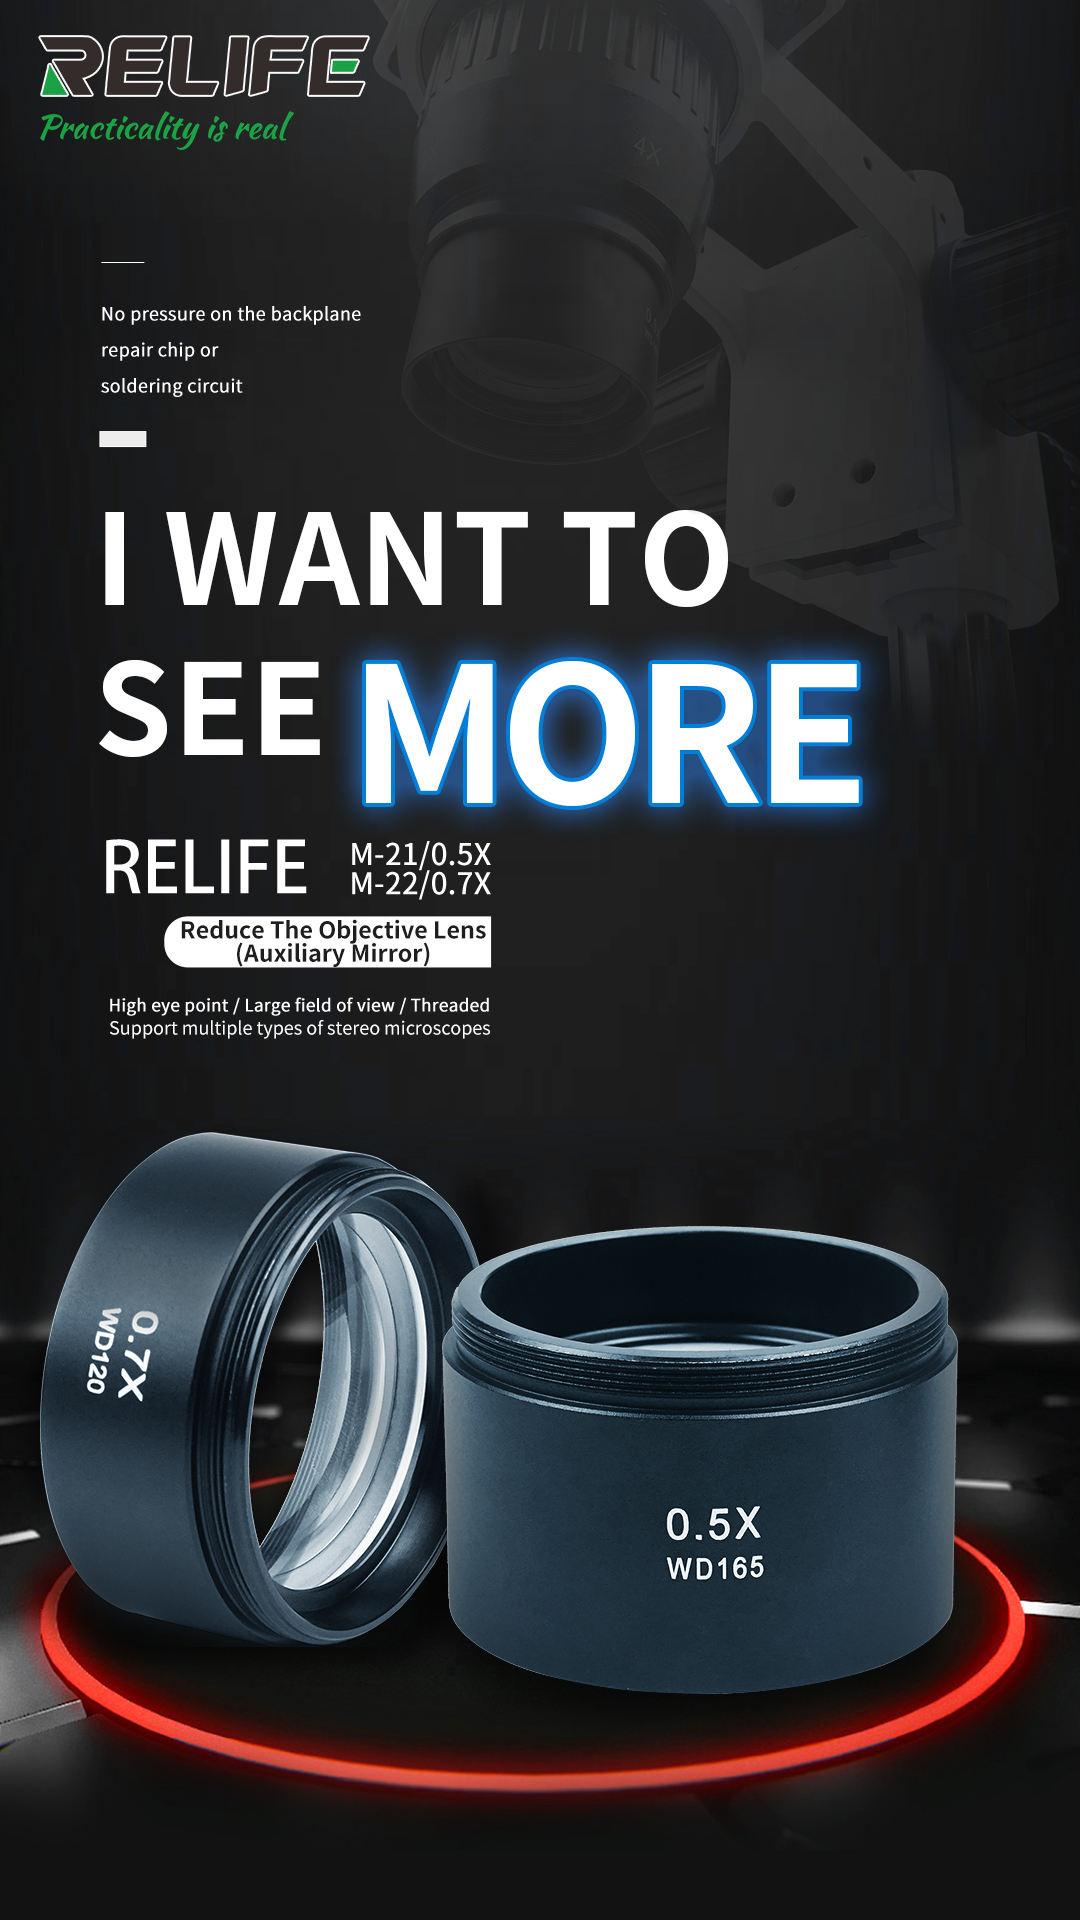 RELIFE M-21 0.5x Auxiliary Lensreife M-21 0.5x Auxiliary Lens